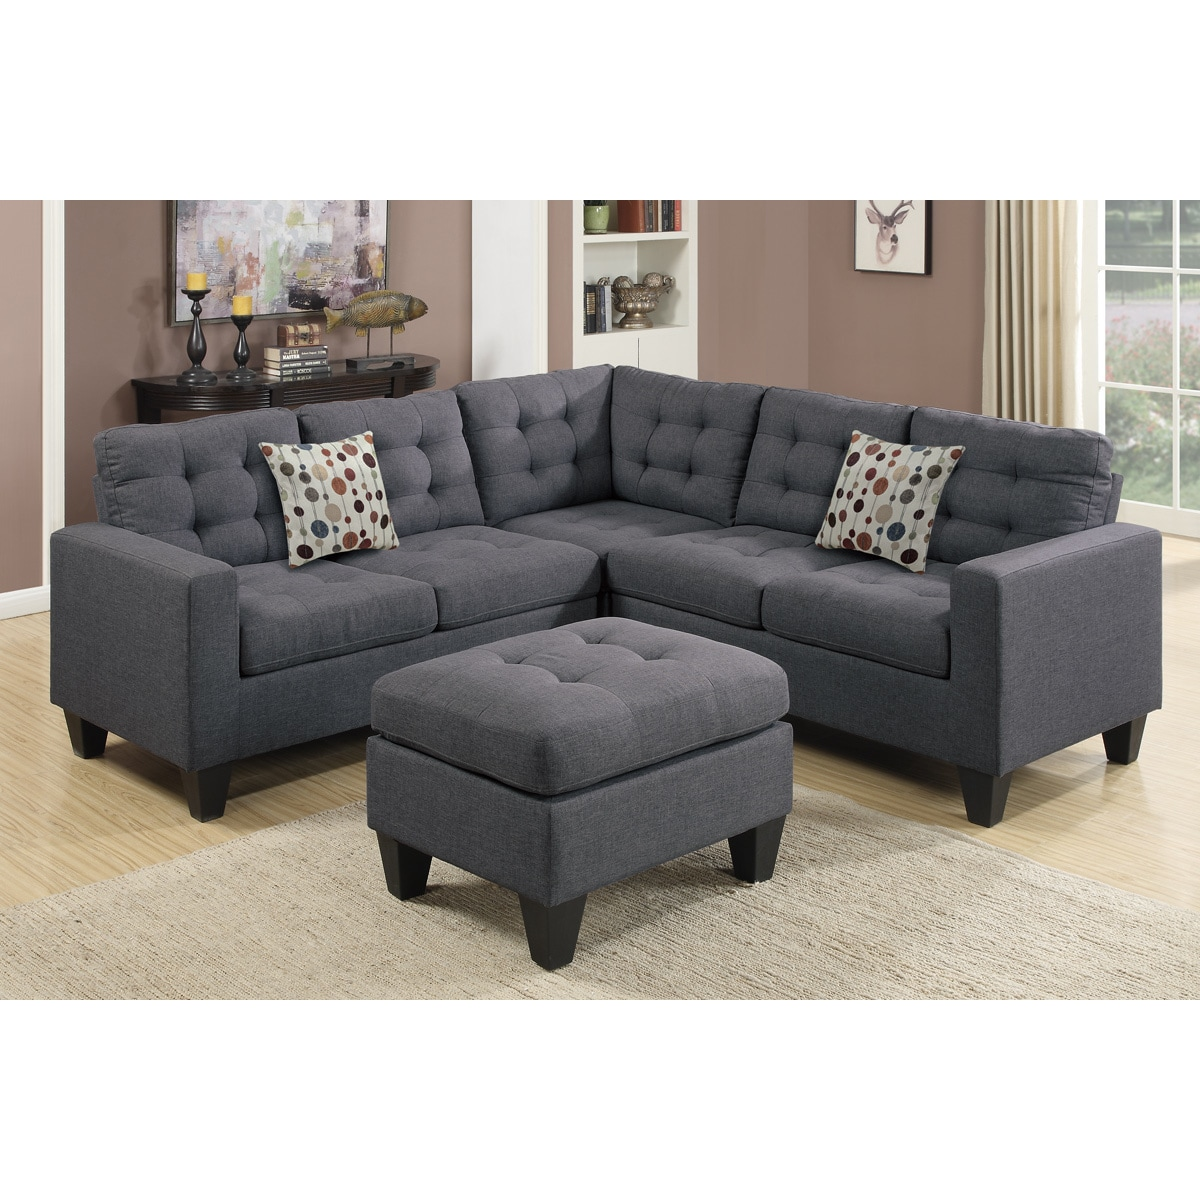 sectional chaise sofa with raf best b customizable bcustomizable cuddler piece furniture of in widely sofas used four